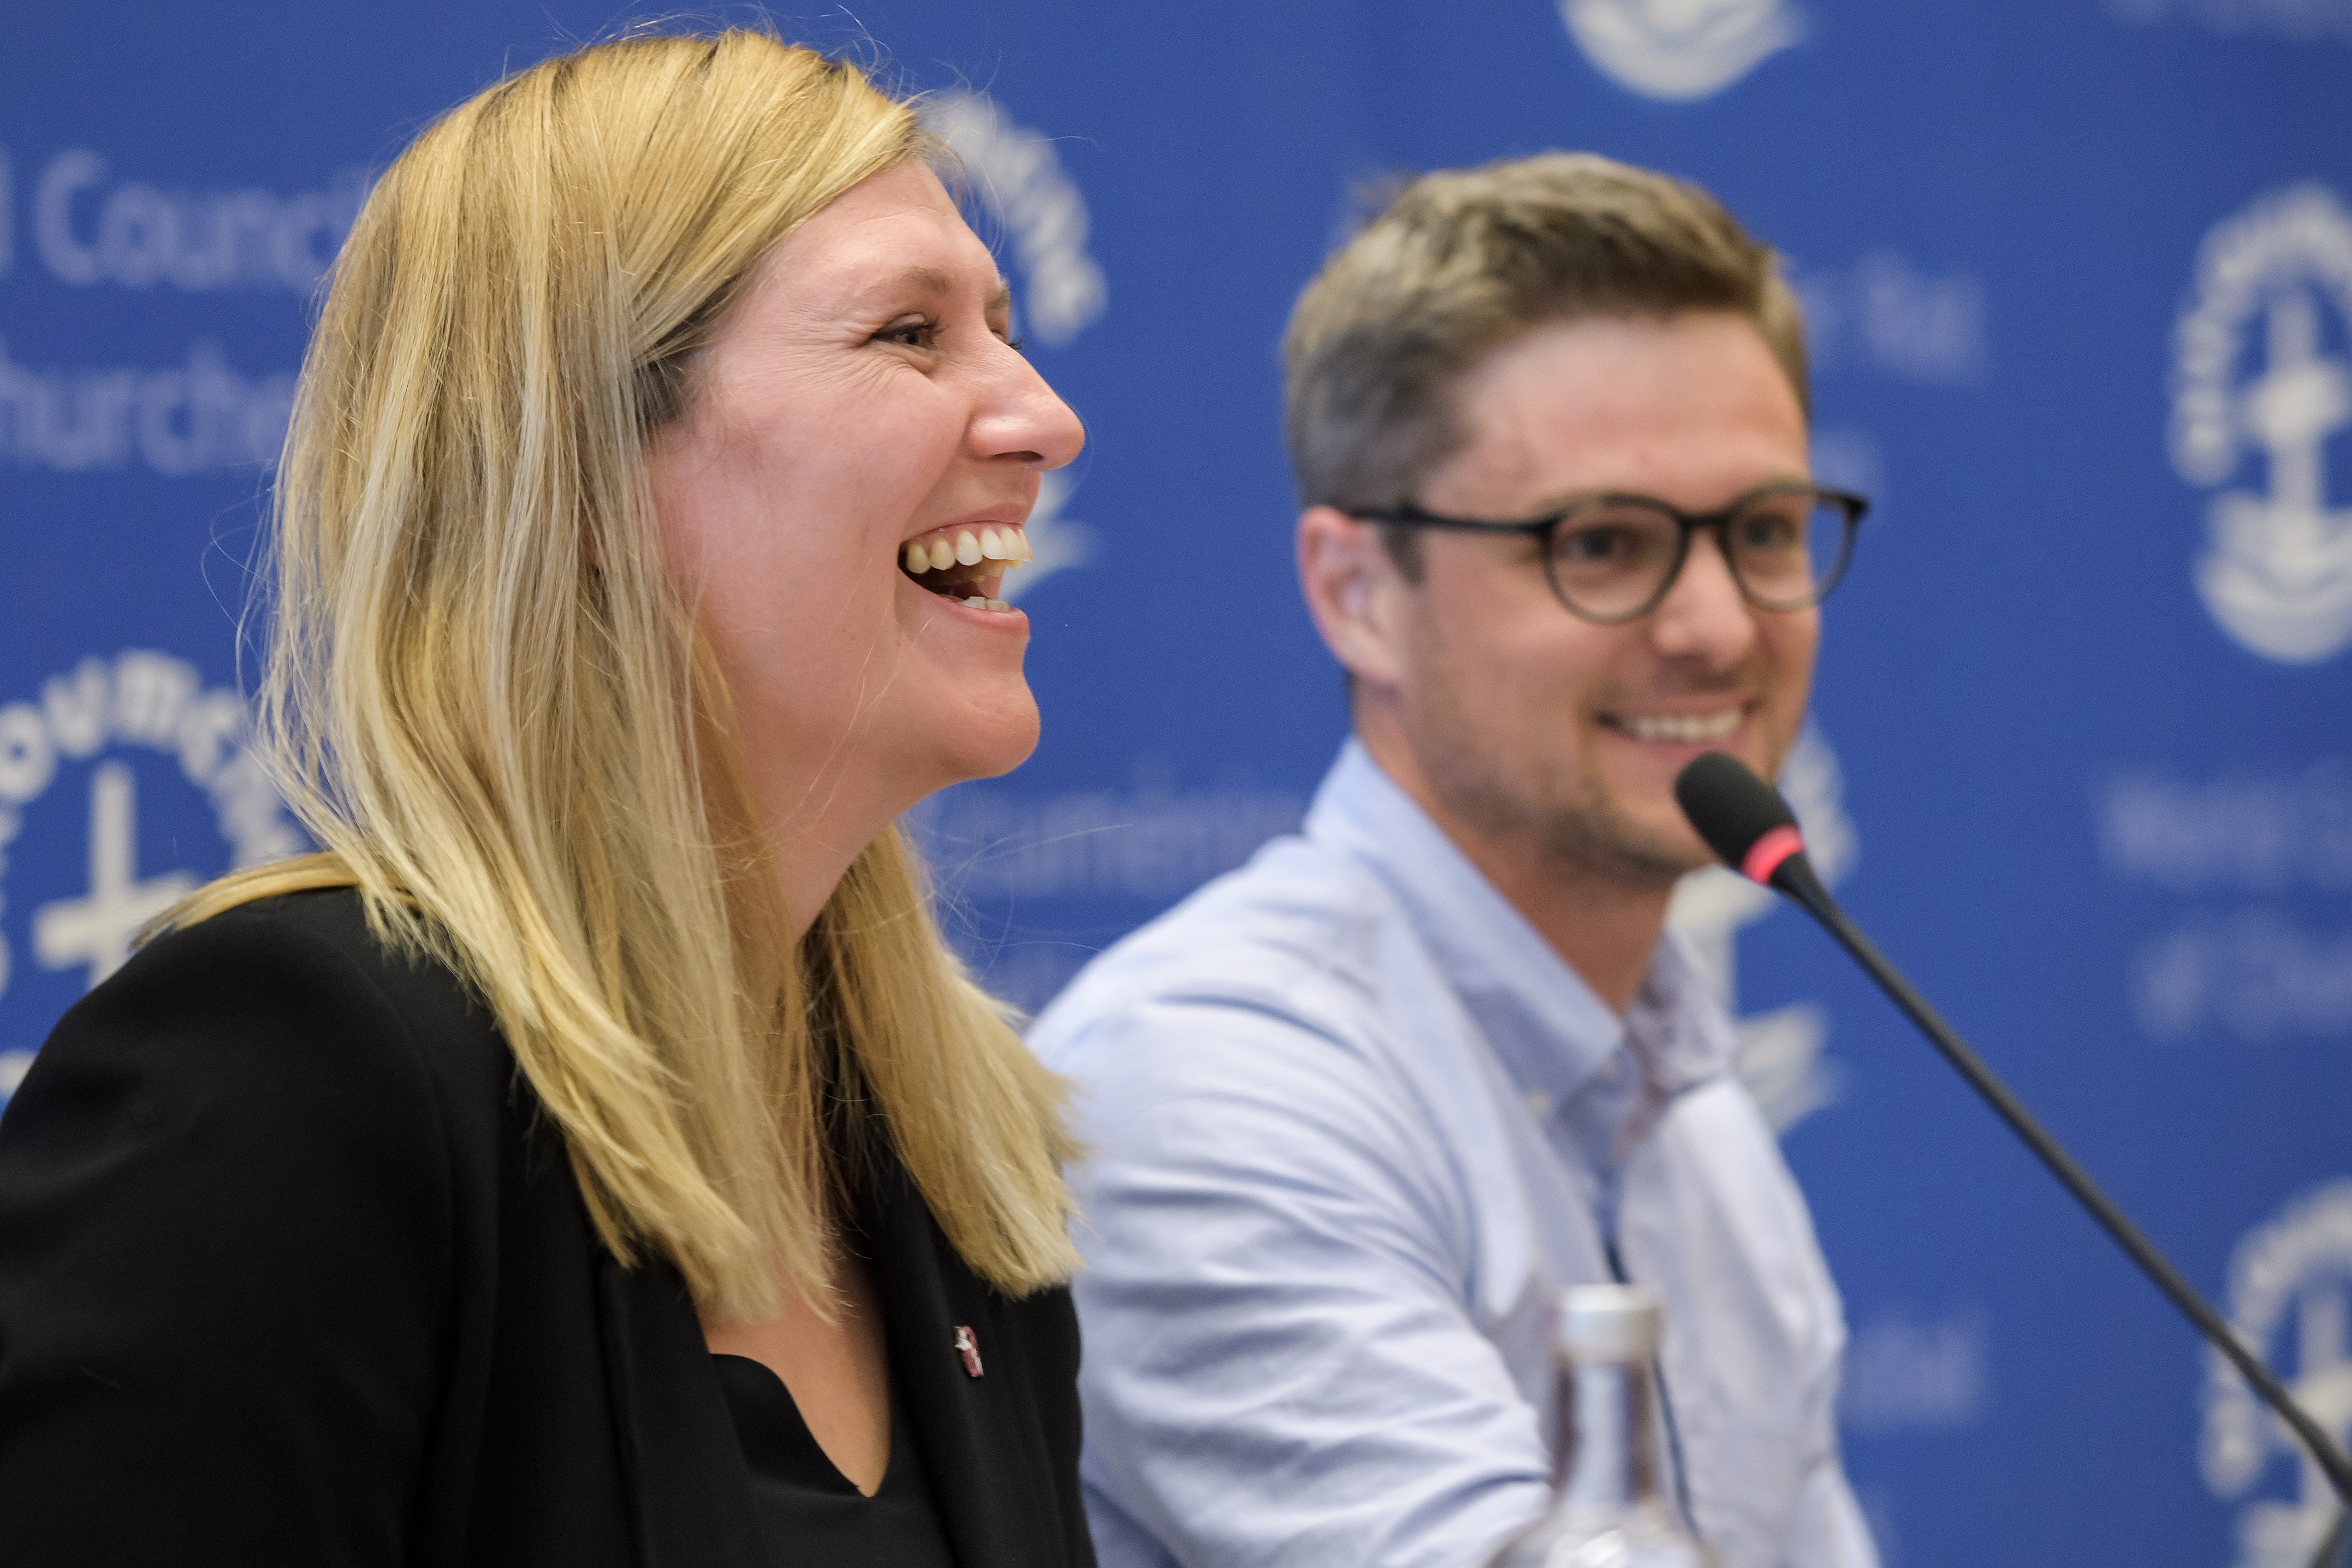 ICAN Executive director Beatrice Fihn (L) reacts next to coordinator Daniel Hogstan (R) during a press conference after ICAN won the Nobel Peace Prize on October 6, 2017 in Geneva.